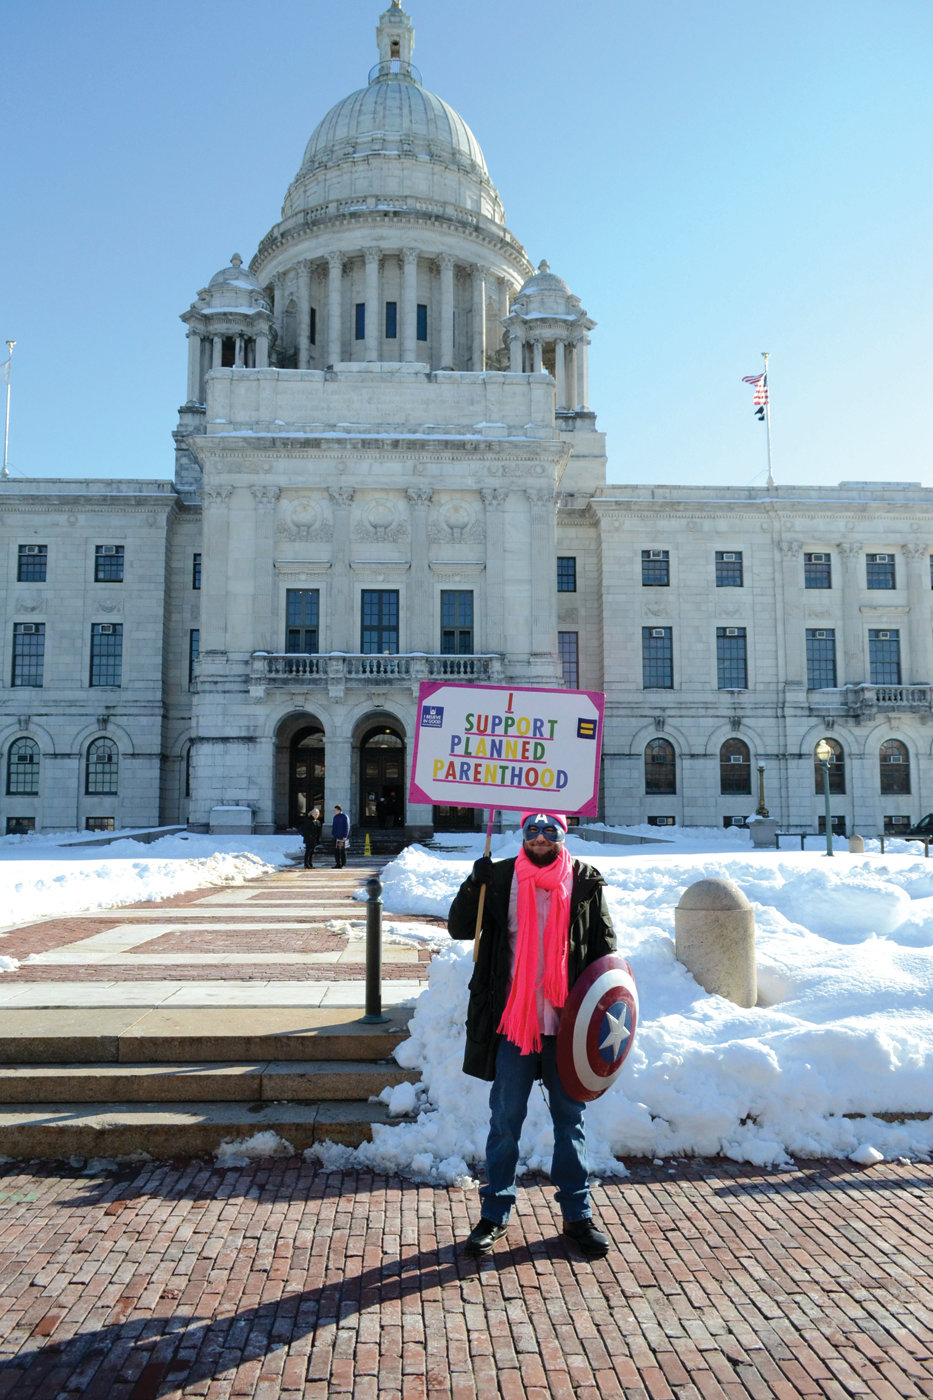 PROTECTING CHOICE: Joe Burgio, a Warwick resident, took up a spot in front of the State House visitor's entrance donning Captain America gear and proclaiming his support of pro-choice legislation and decrying those who seek to shut the bill down.